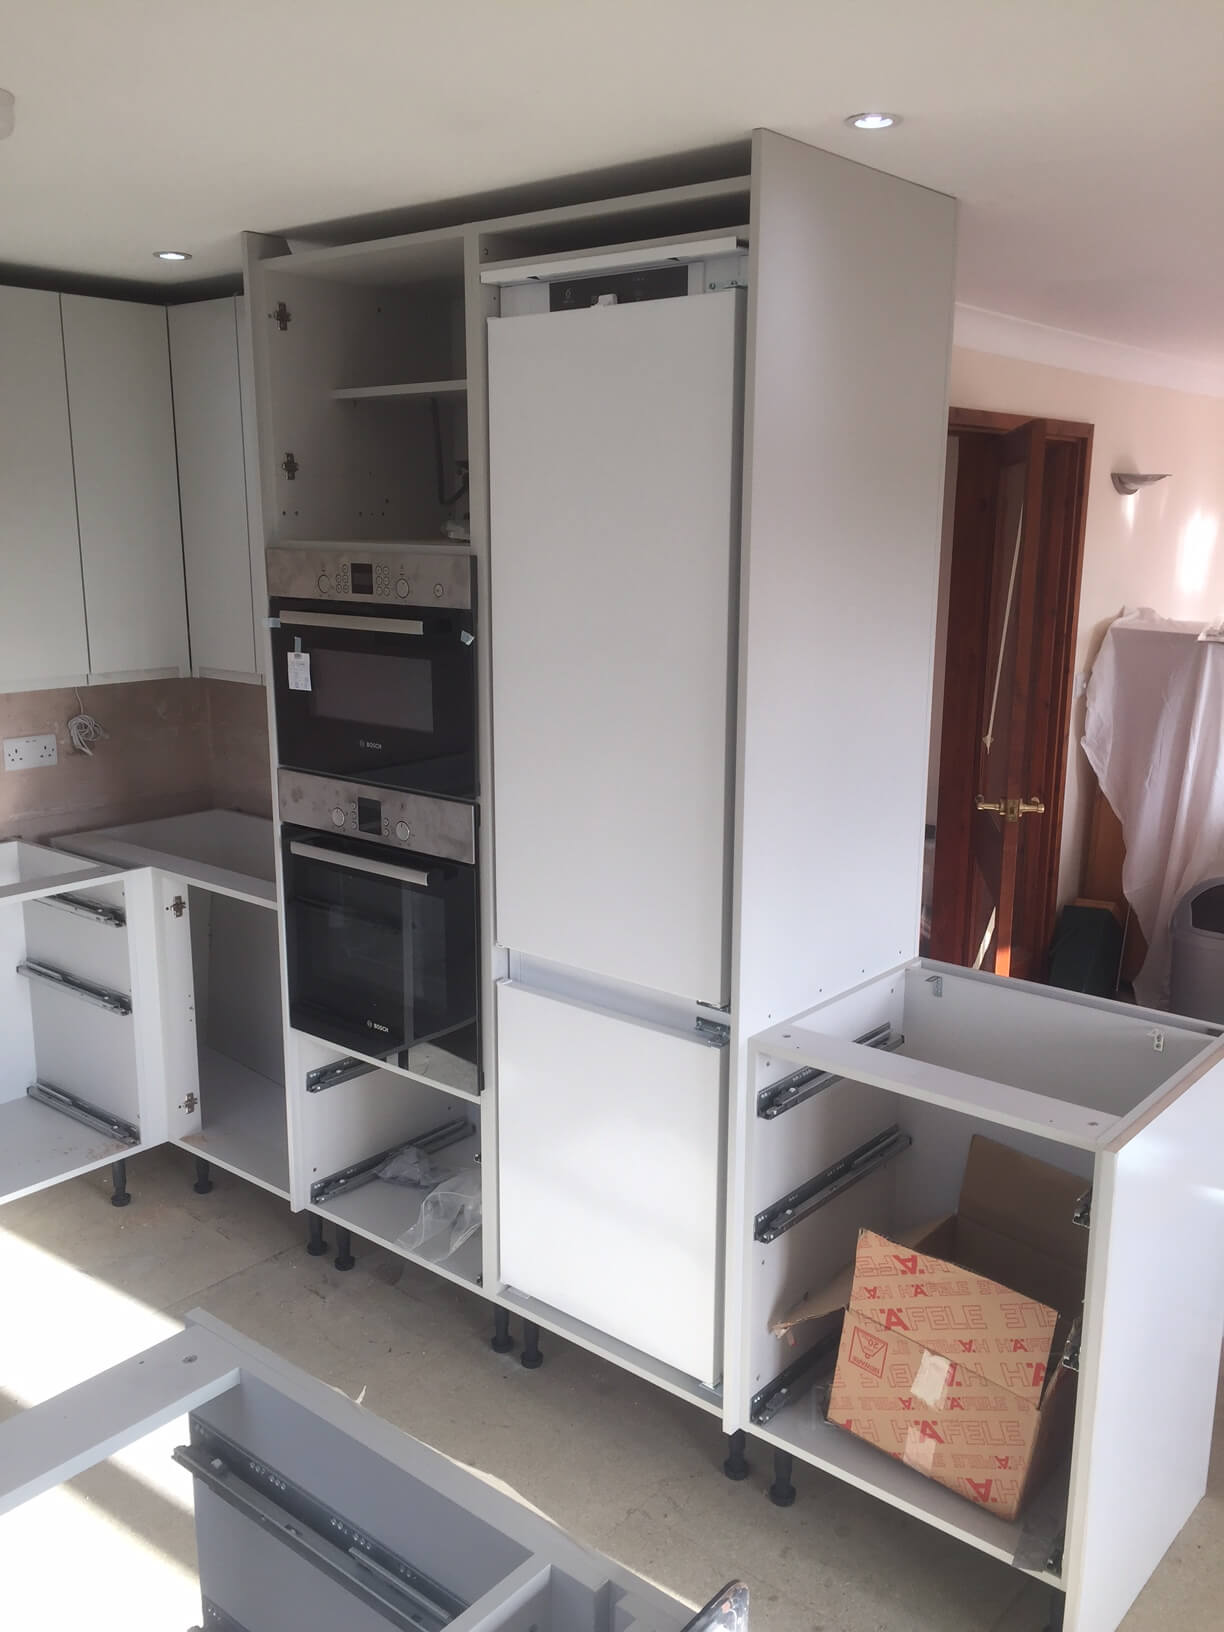 Microwave and Fridge In fitted